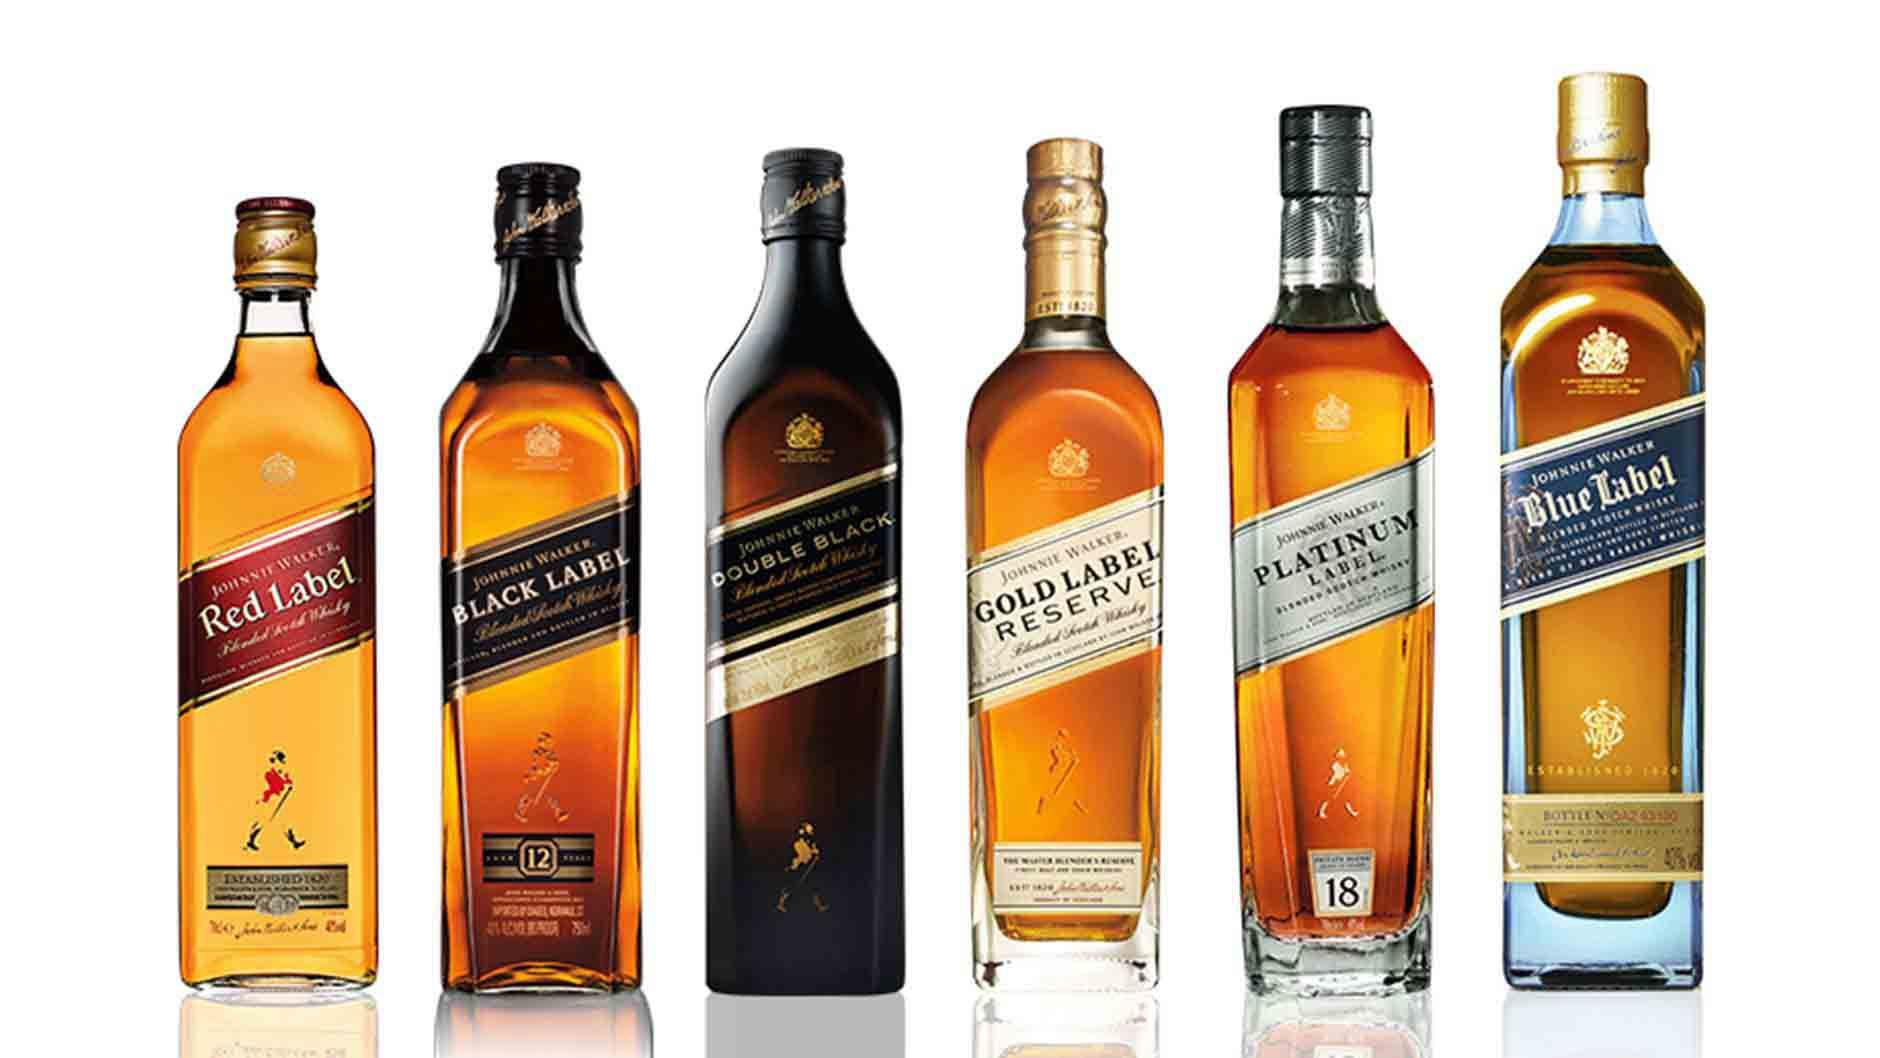 Bouteille de whisky de la gamme Johnnie Walker Colour